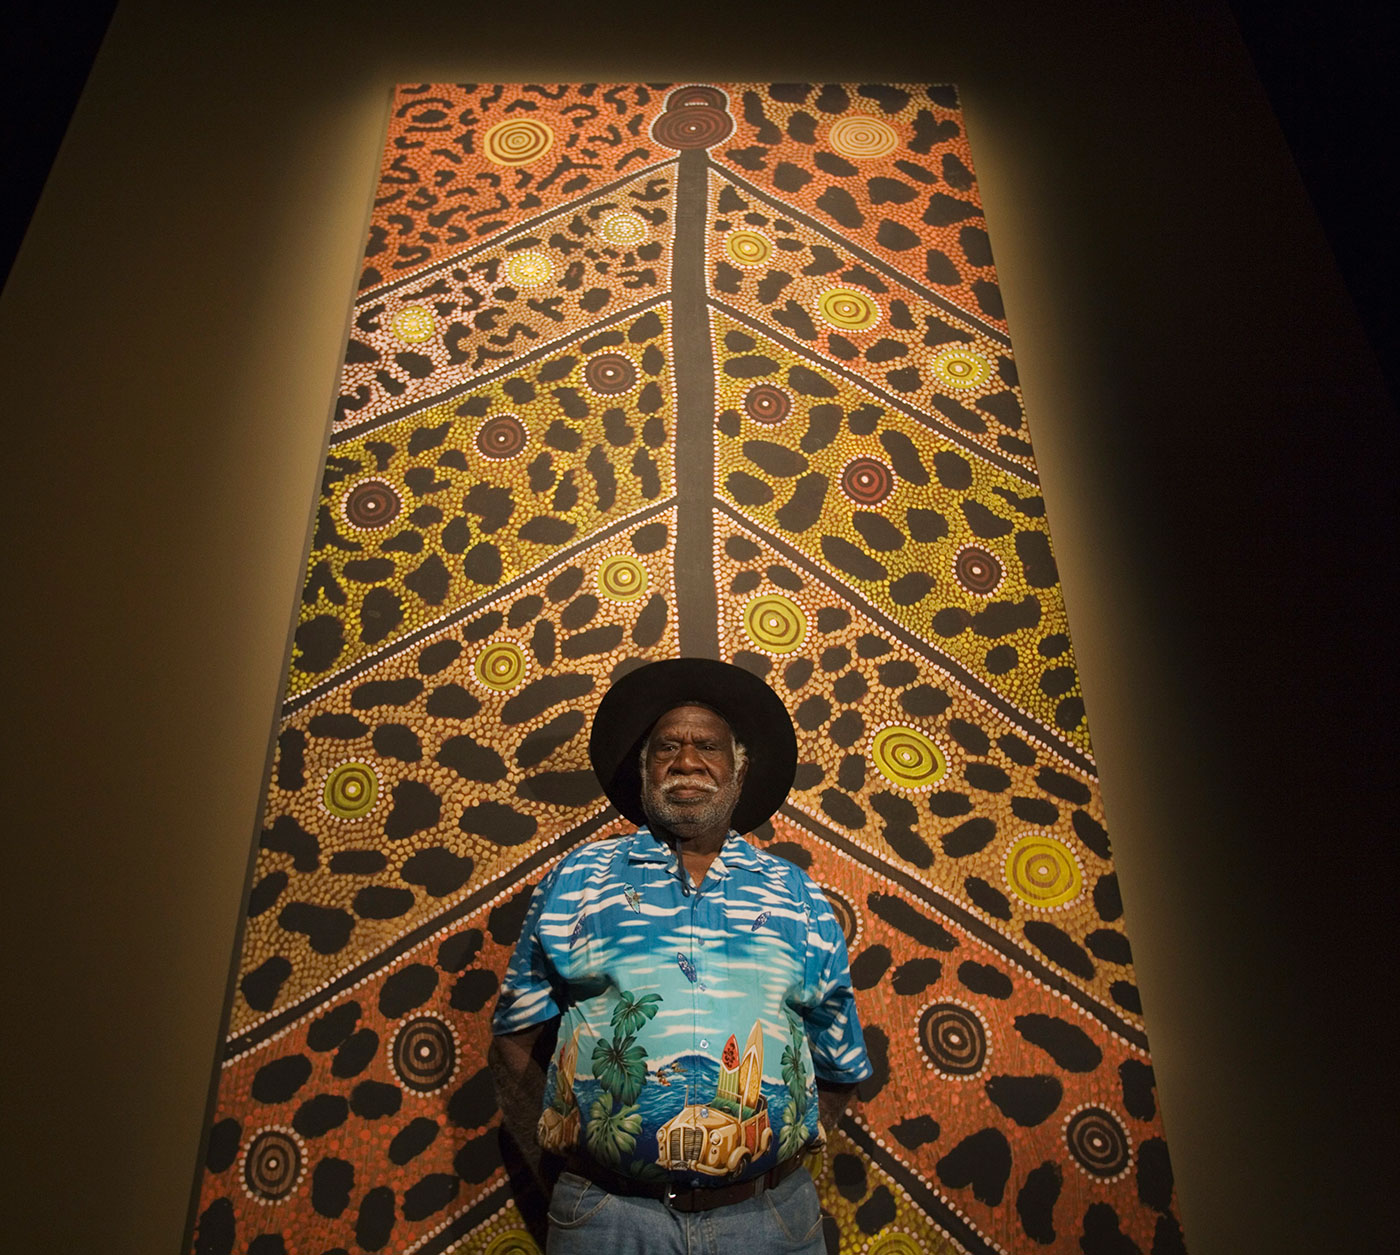 Long Jack Phillipus Tjakamarra standing in front of large painting. - click to view larger image